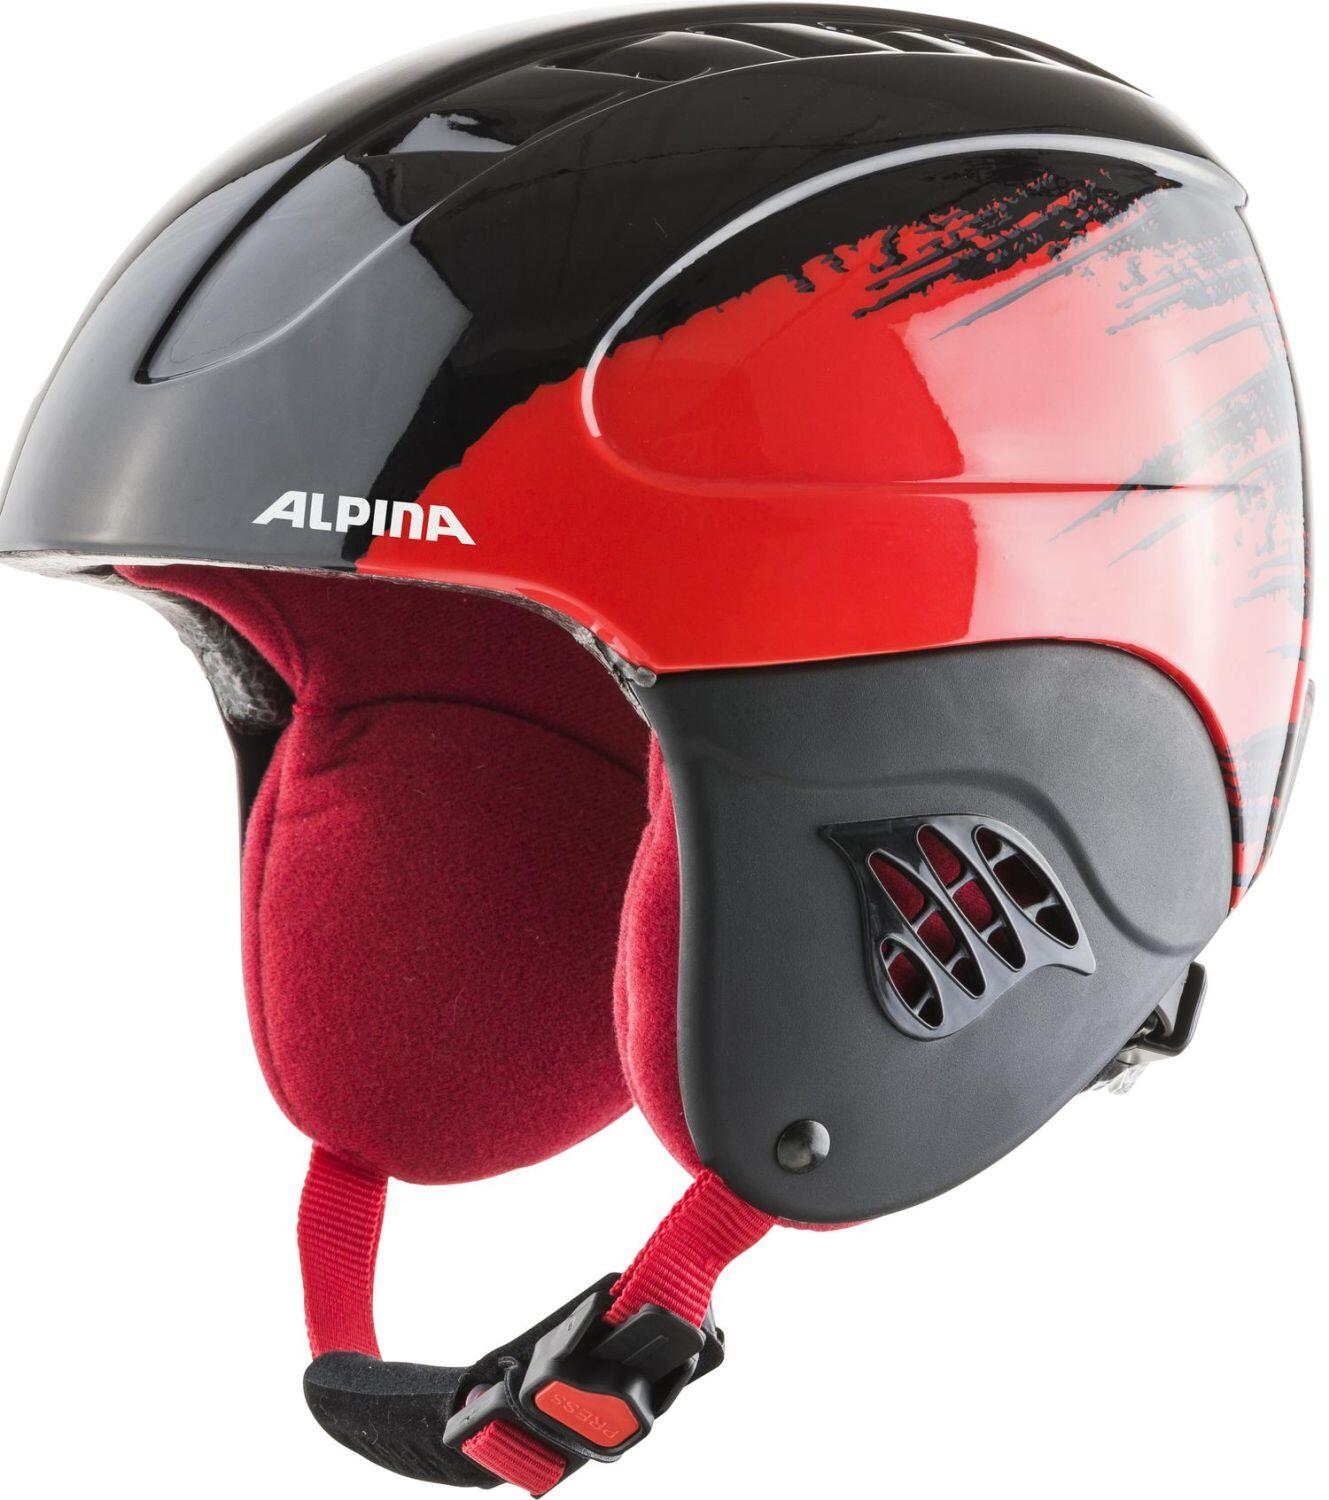 Alpina Carat Kinder Skihelm (Größe 51 55 cm, 65 black red gloss)